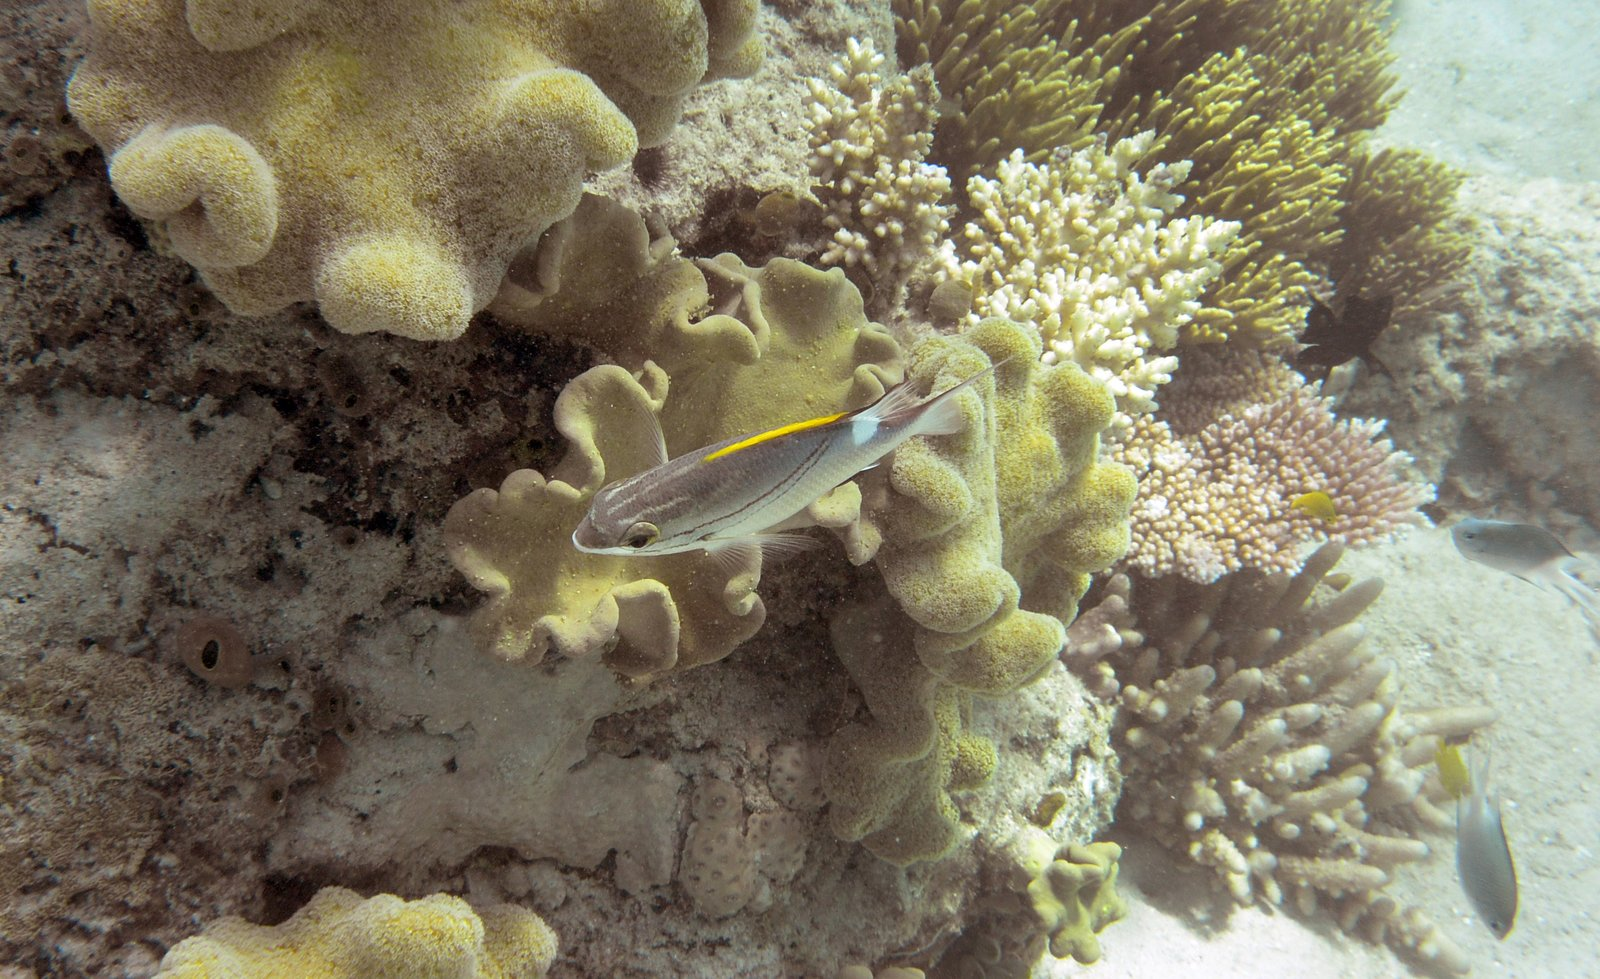 Coral bleaching has ravaged the Great Barrier Reef